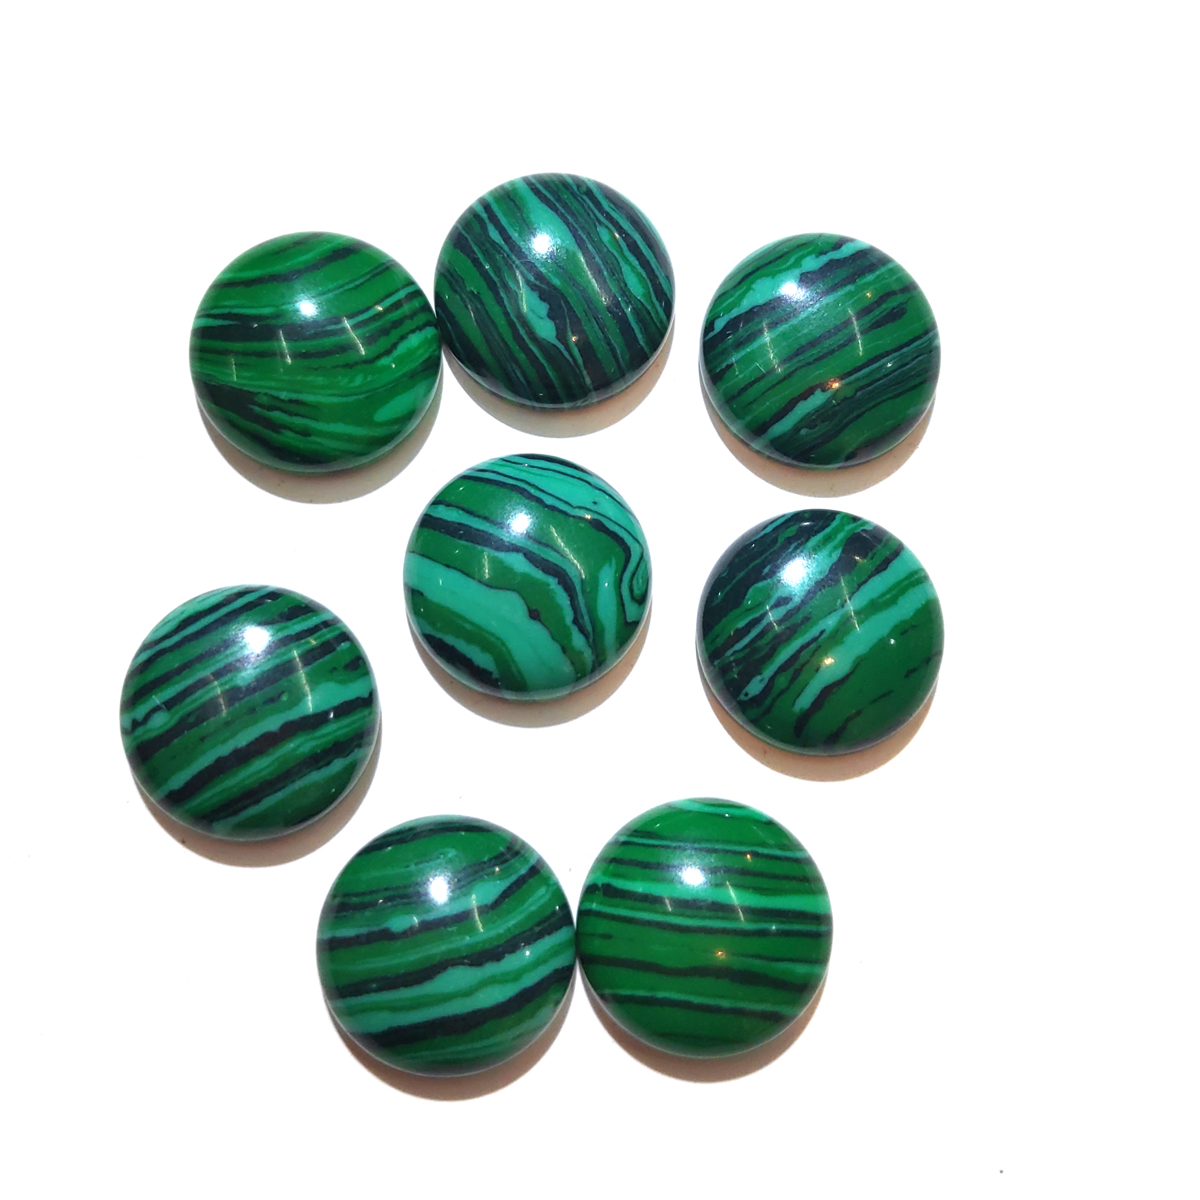 10 PCS Malachite Natural Stones Cabochon 12mm 14mm 16mm 18mm 20mm Round No Hole For Making Jewelry DIY